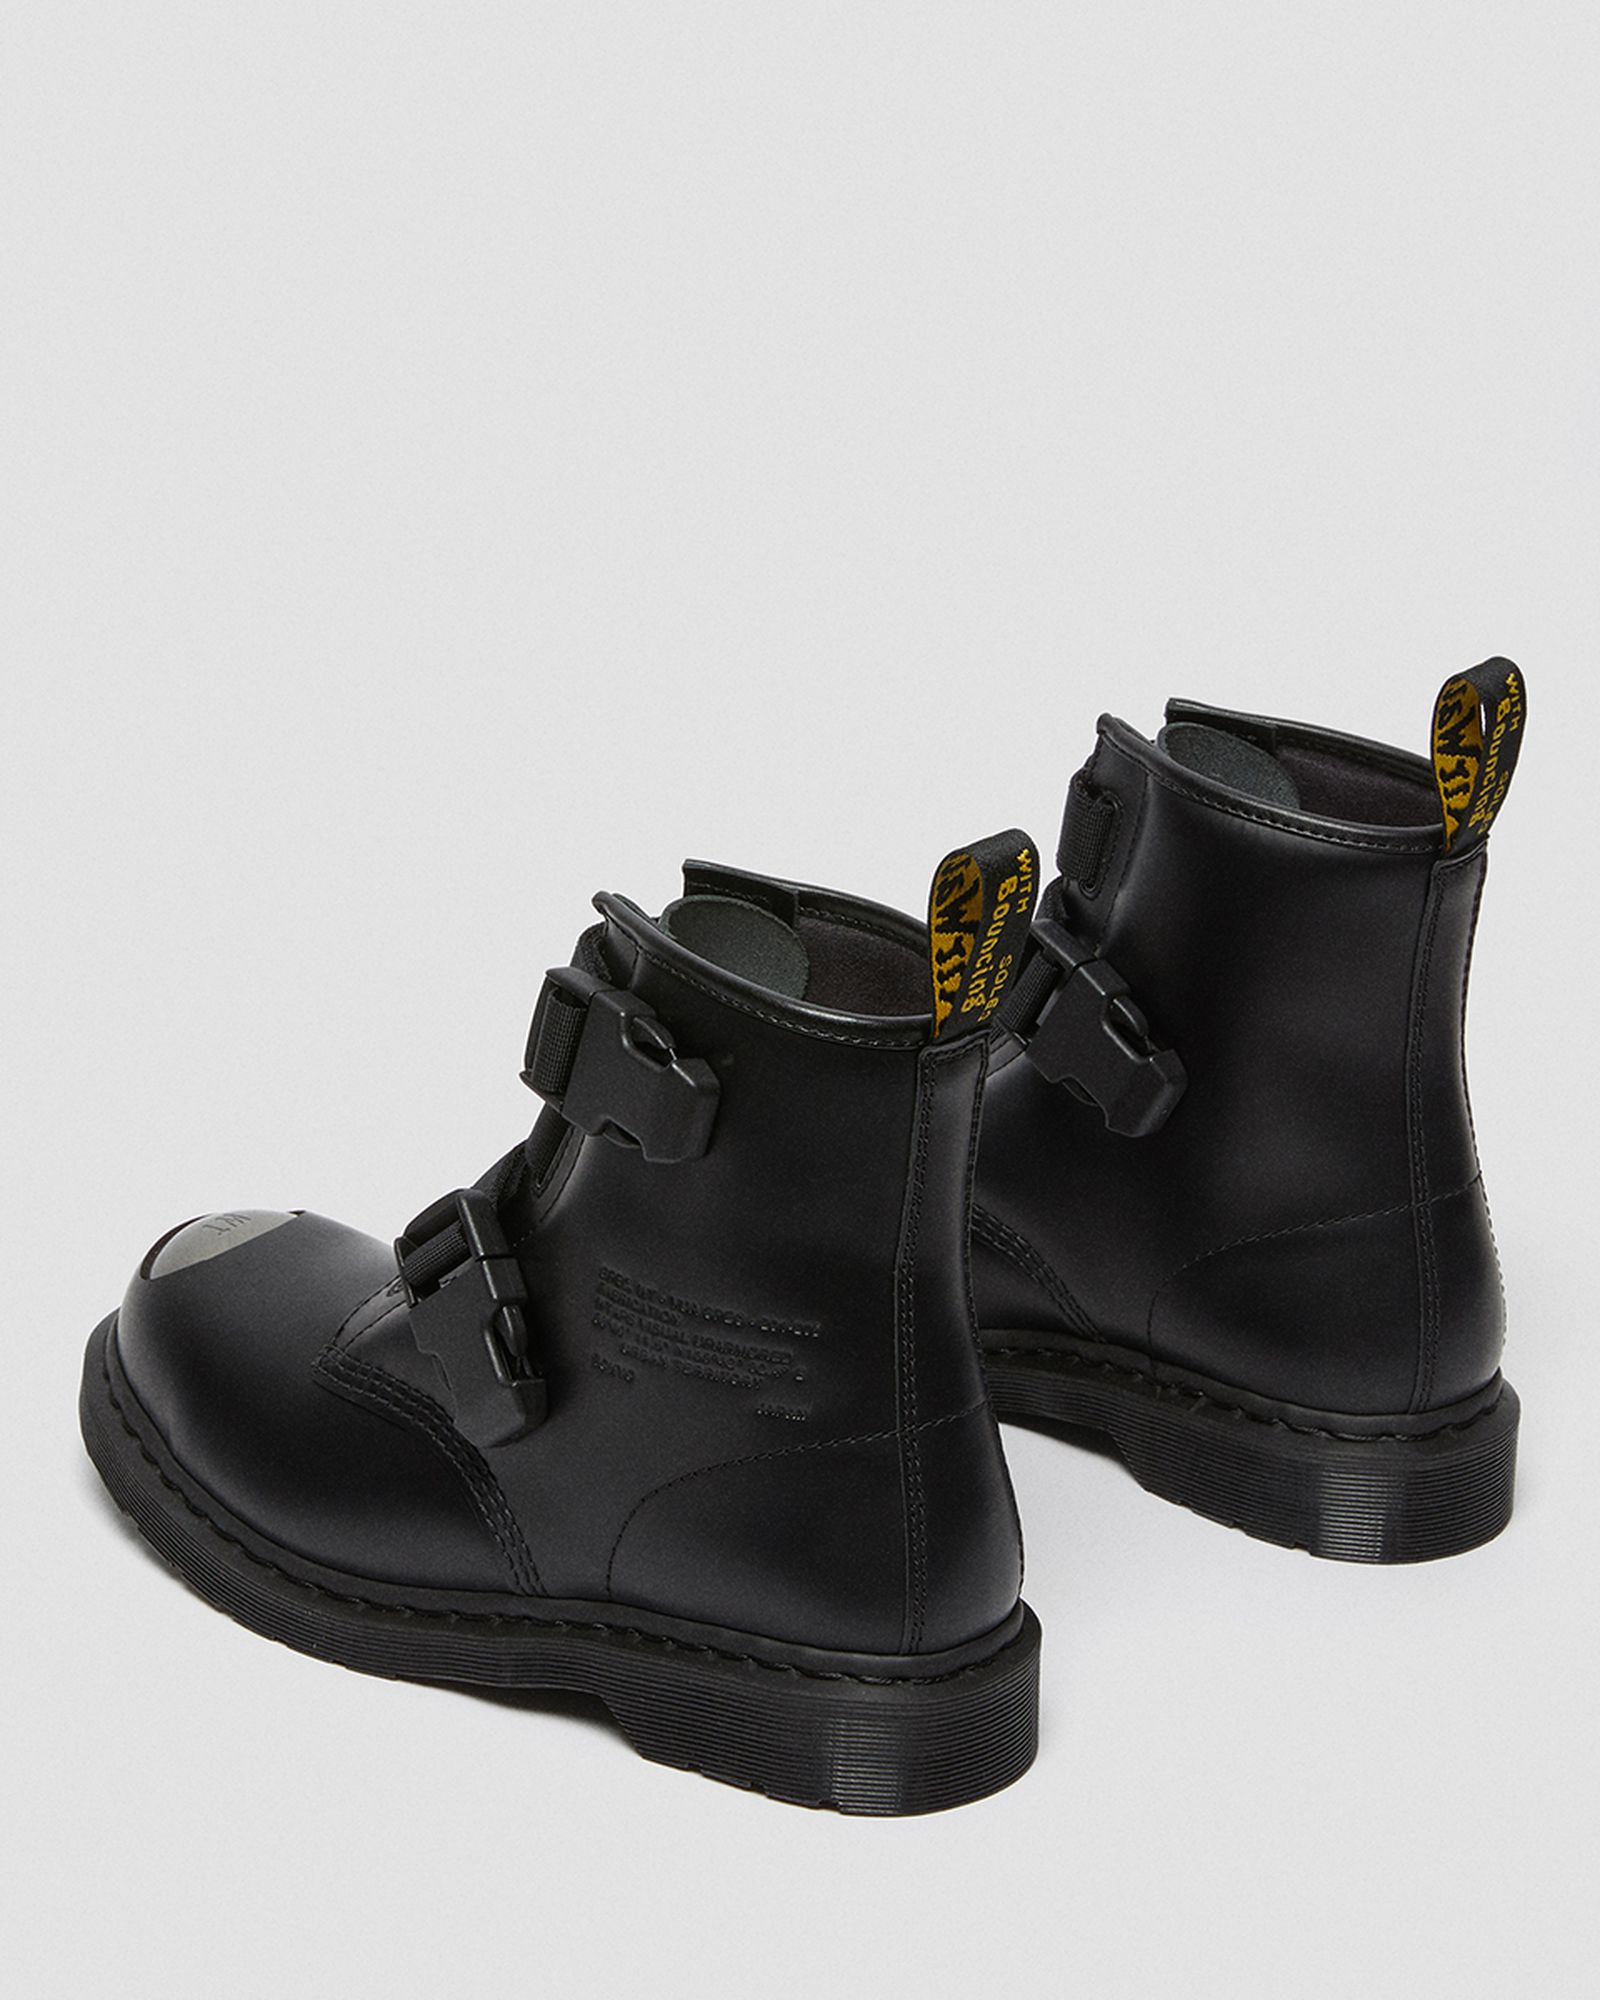 wtaps-dr-martens-1460-remastered-release-date-price-1-03